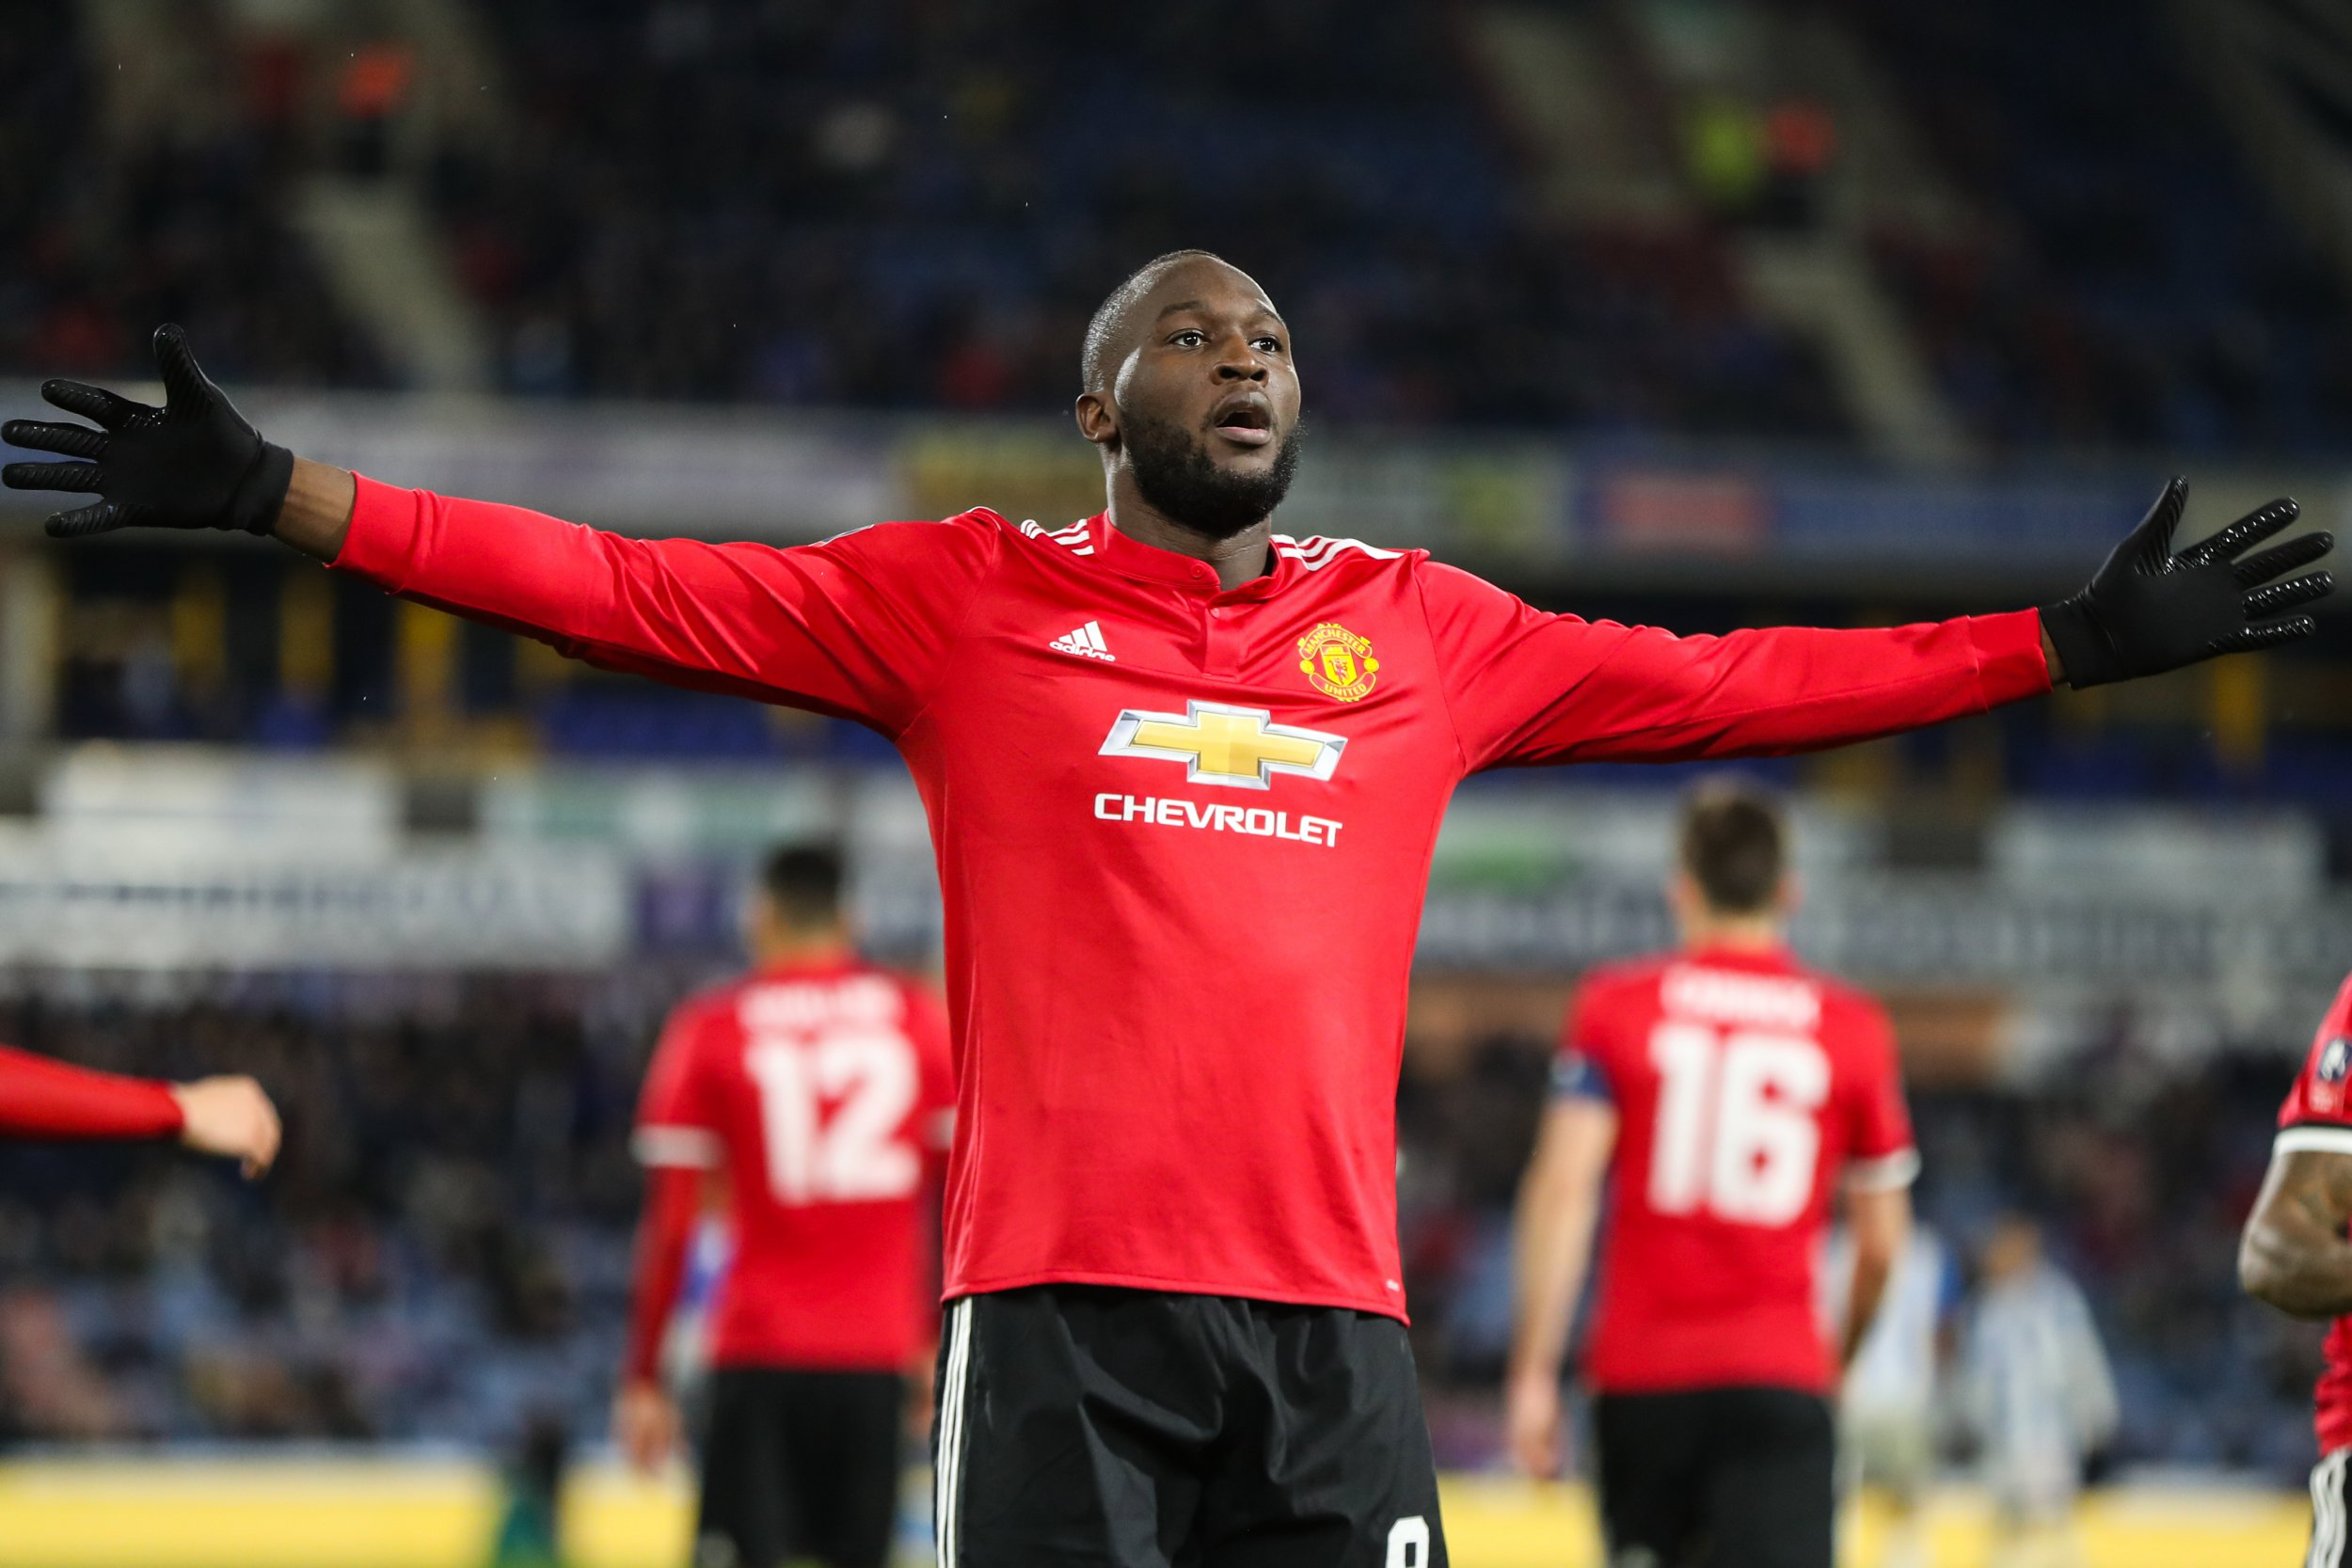 Romelu Lukaku refusing to celebrate goals at Manchester United has confused Chris Sutton